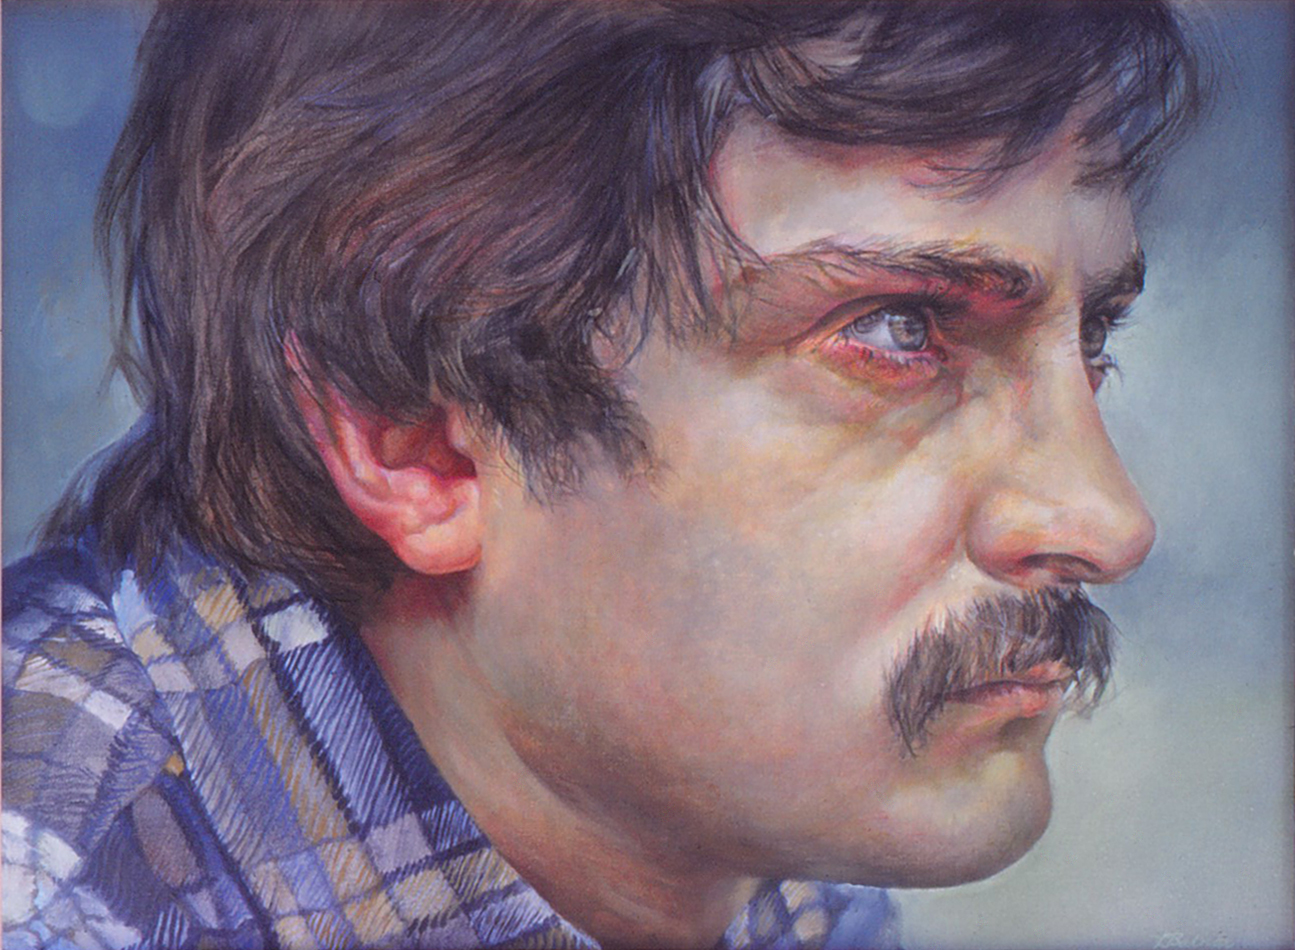 5dn - Study of M. Without Glasses - oil on canvas, 21x28 in., 1982.jpg